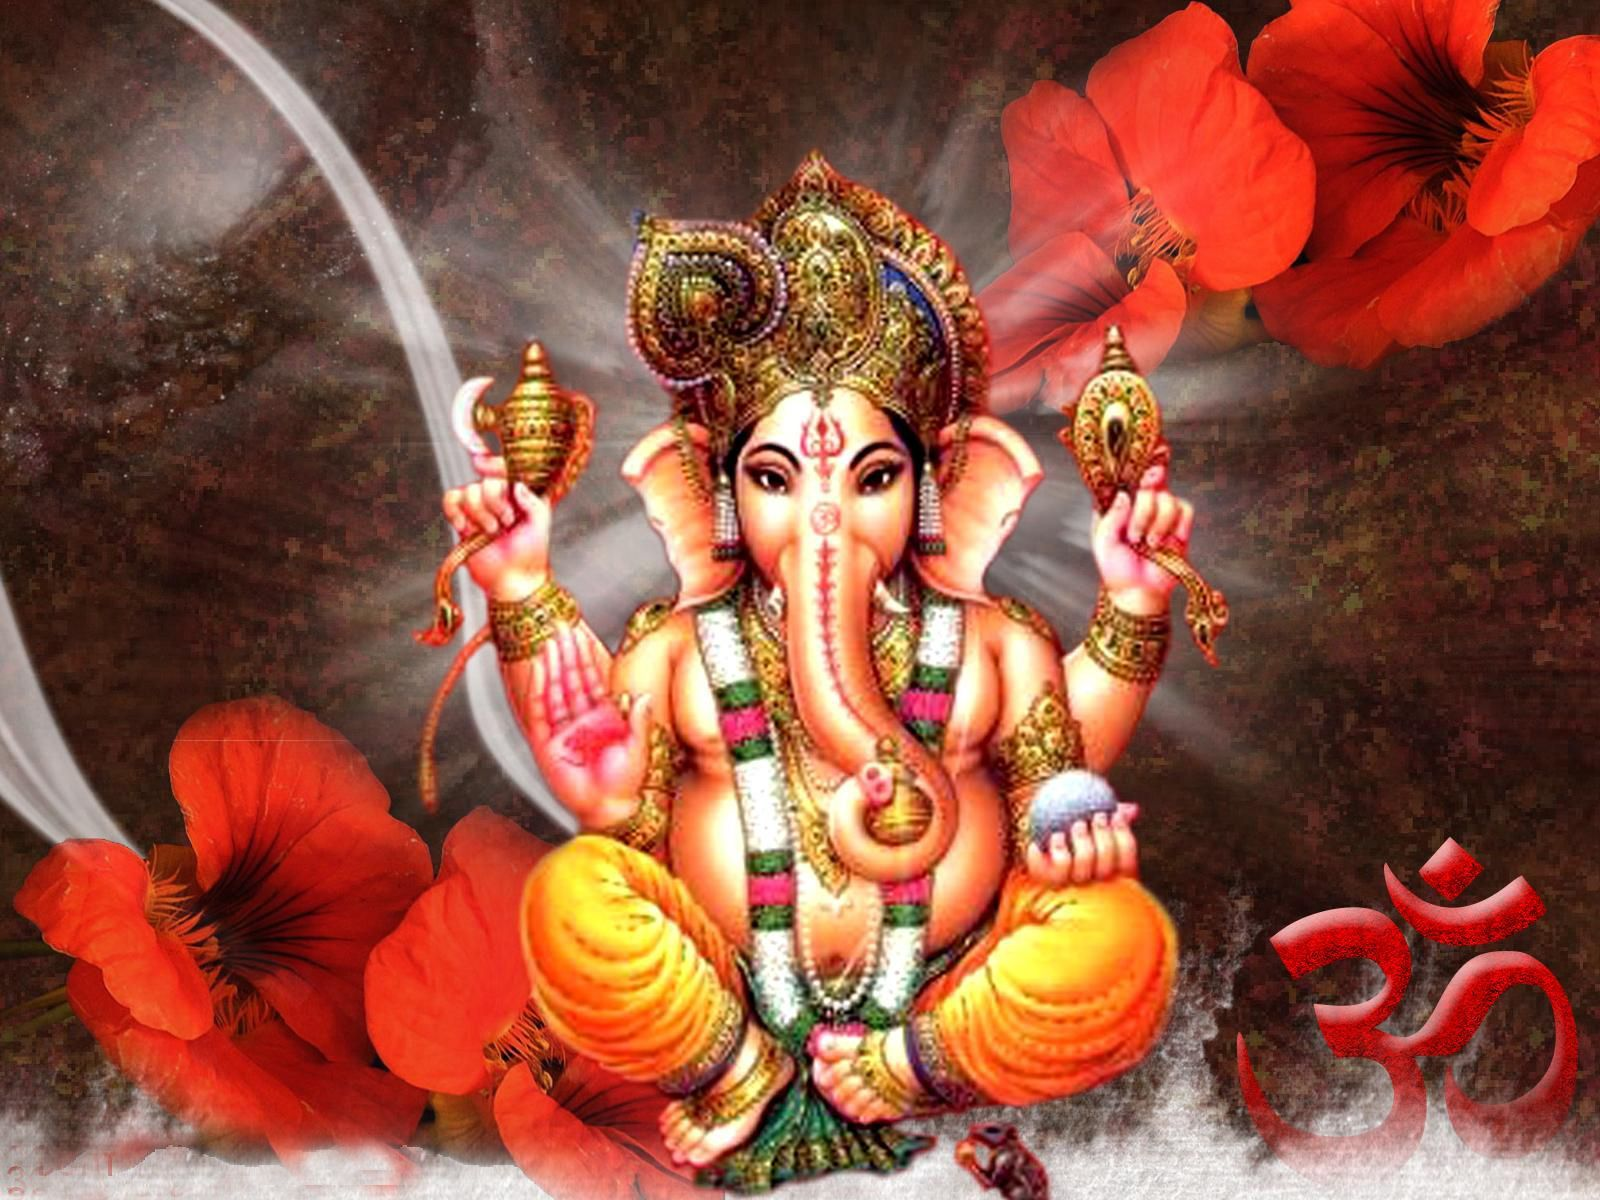 lord ganesha fullhd desk wallpaper background for iphone